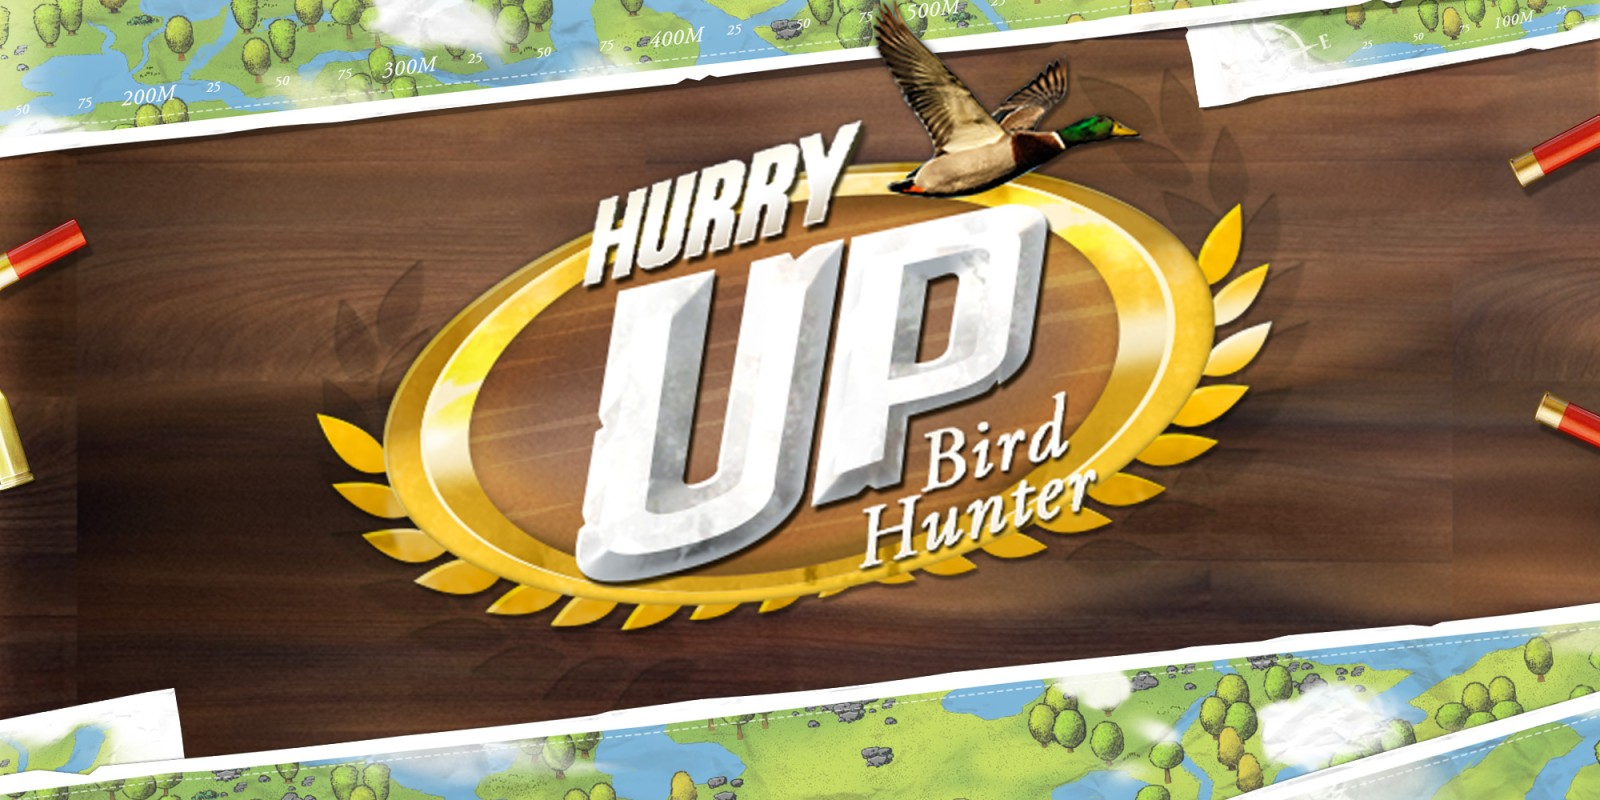 Hurry Up! Bird Hunter